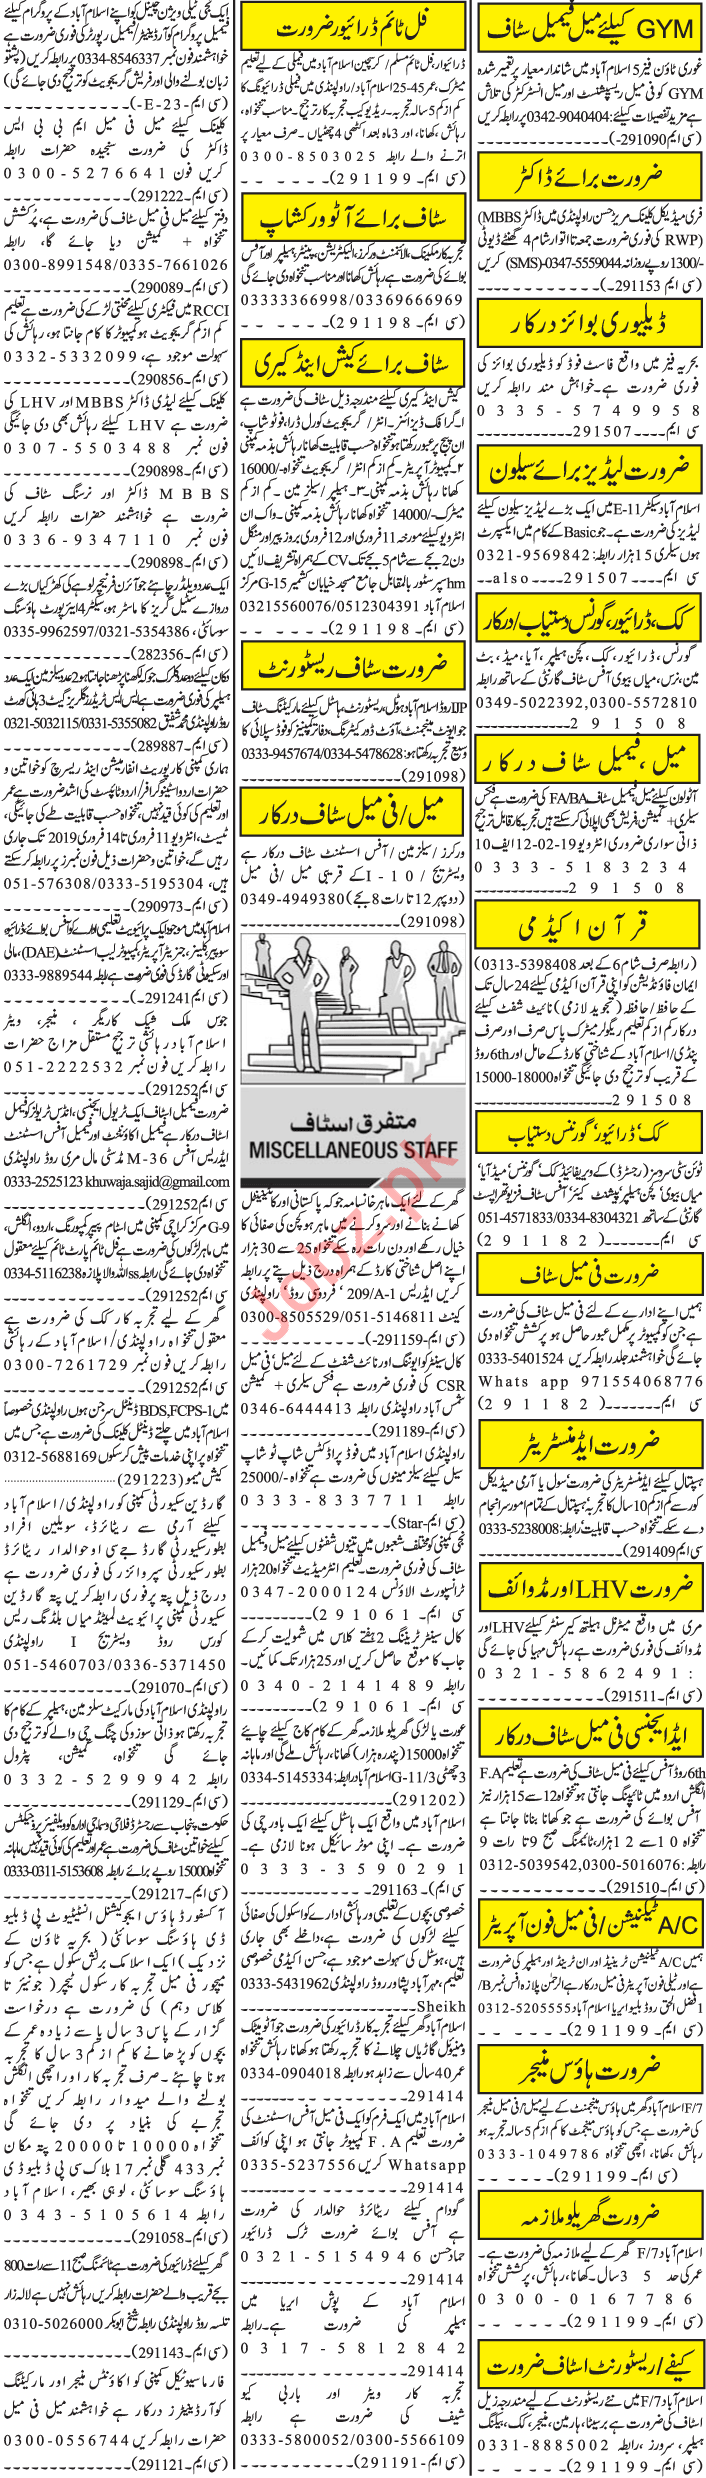 Jang Sunday Classified Ads 10th Feb 2019 for Multiple Staff